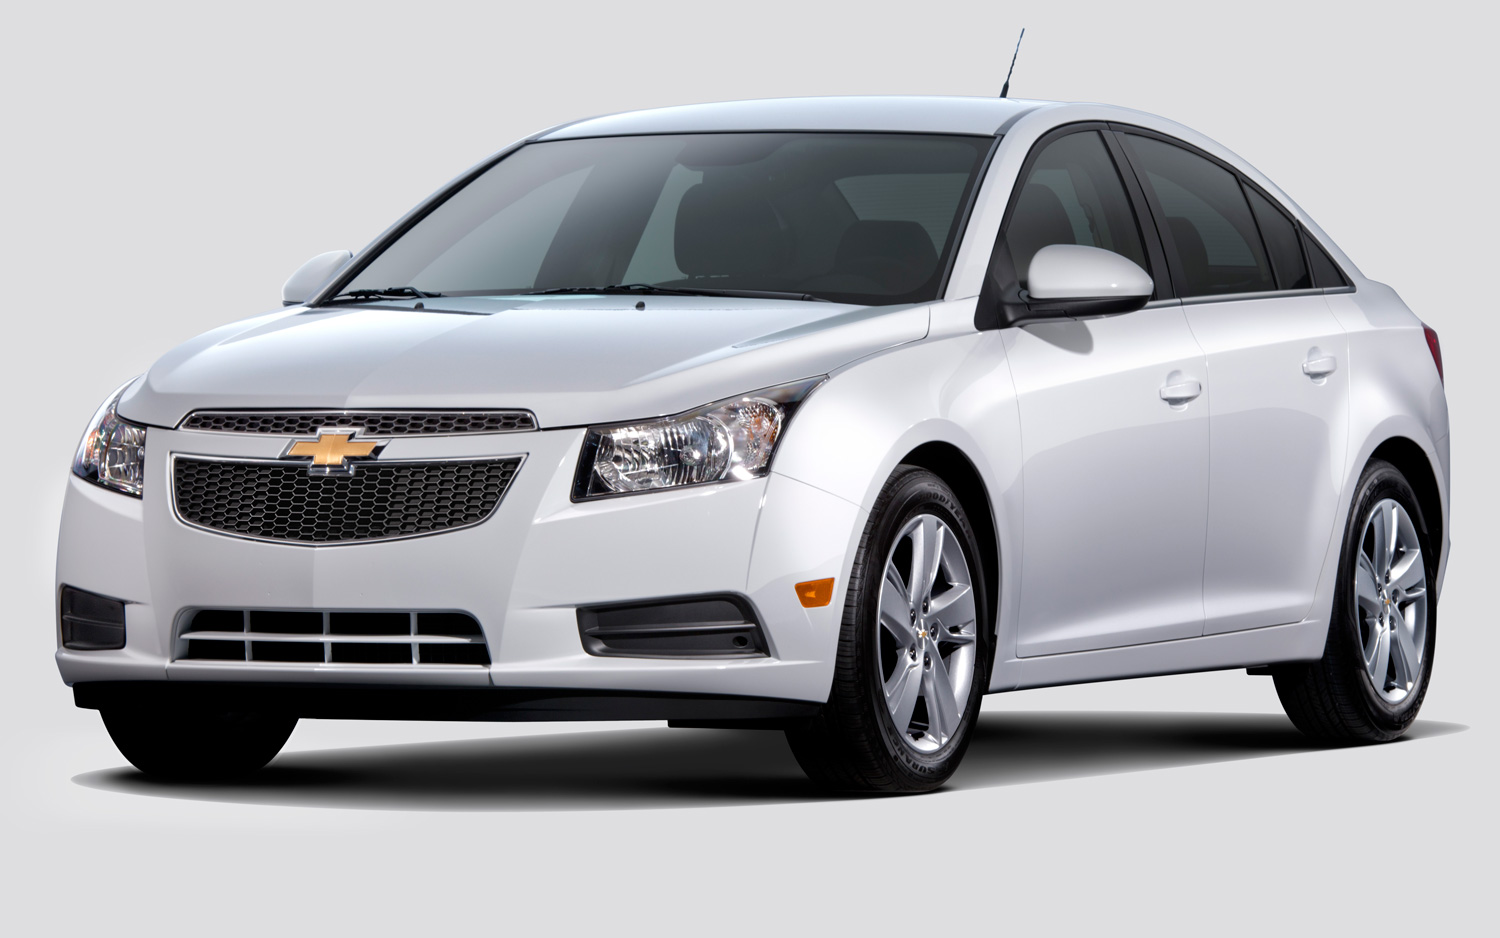 Used Chevrolet Cars For Sale In Bothell